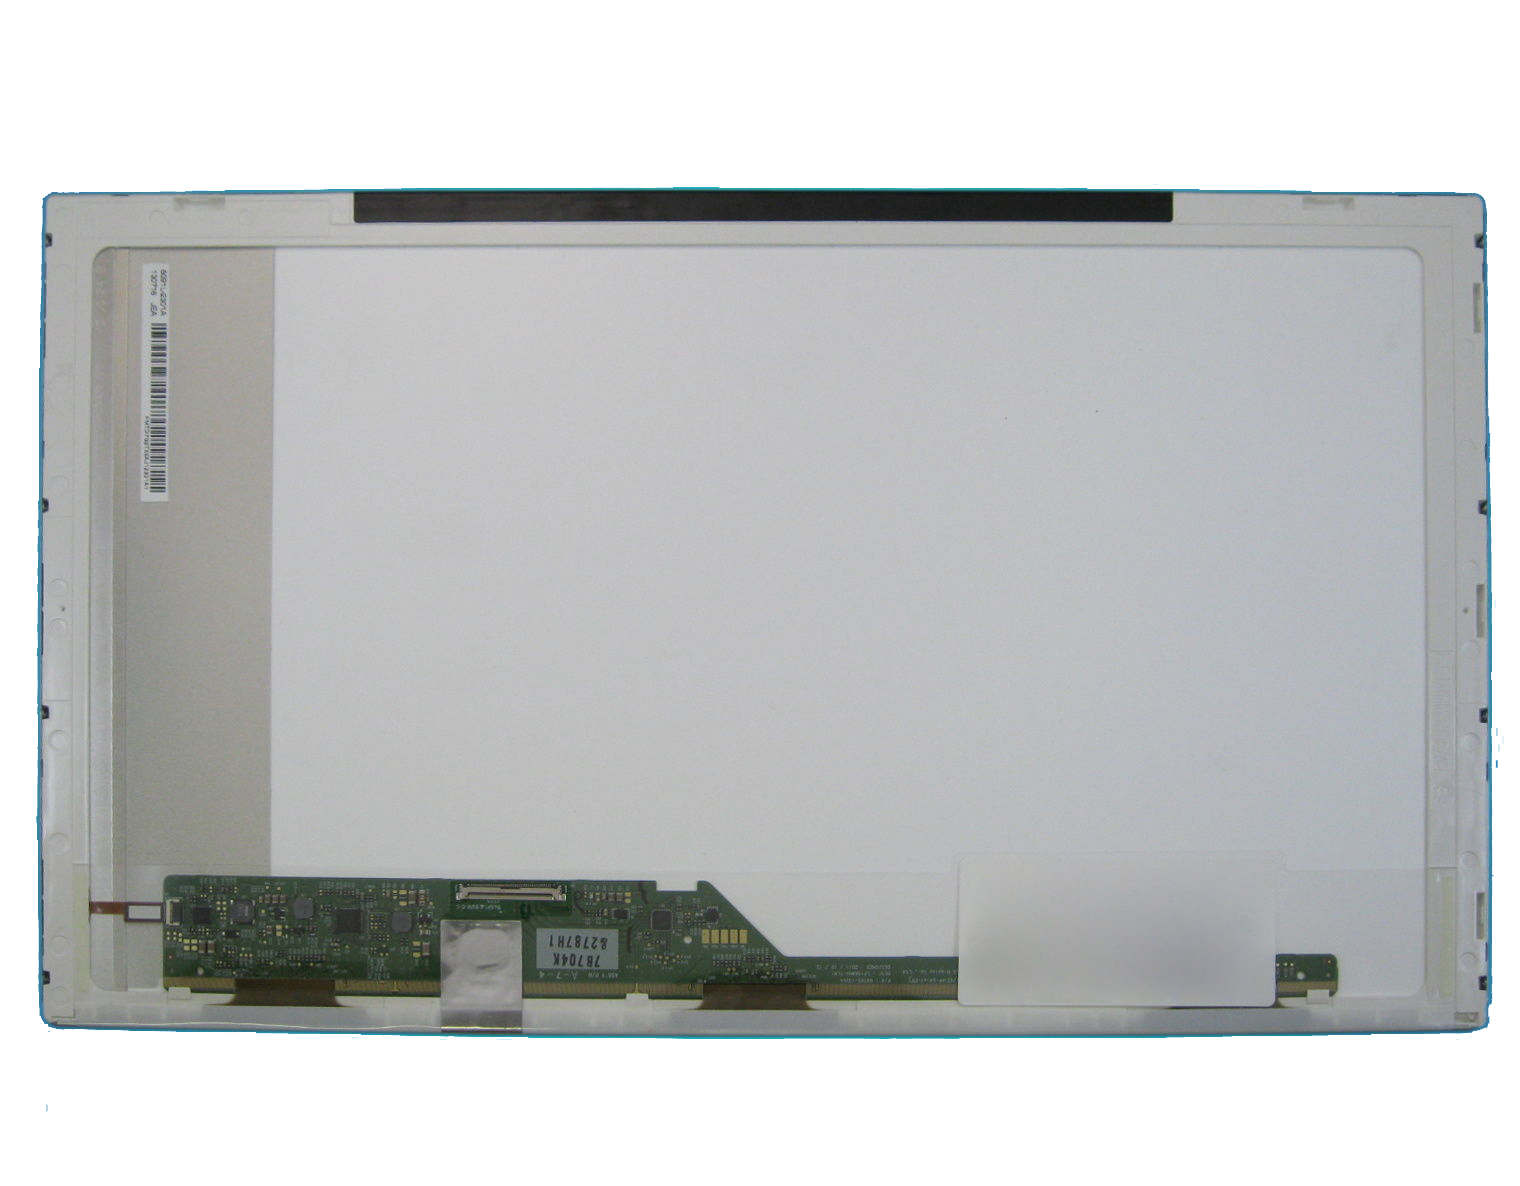 QuYing LAPTOP LCD SCREEN for Acer ASPIRE 5253 5253G 5942G 5935 SERIES (15.6 inch, 1366X768, 40 pin, TK) quying laptop lcd screen for acer aspire ethos 5951g timeline 5745 7531 series 15 6 inch 1366x768 40pin n